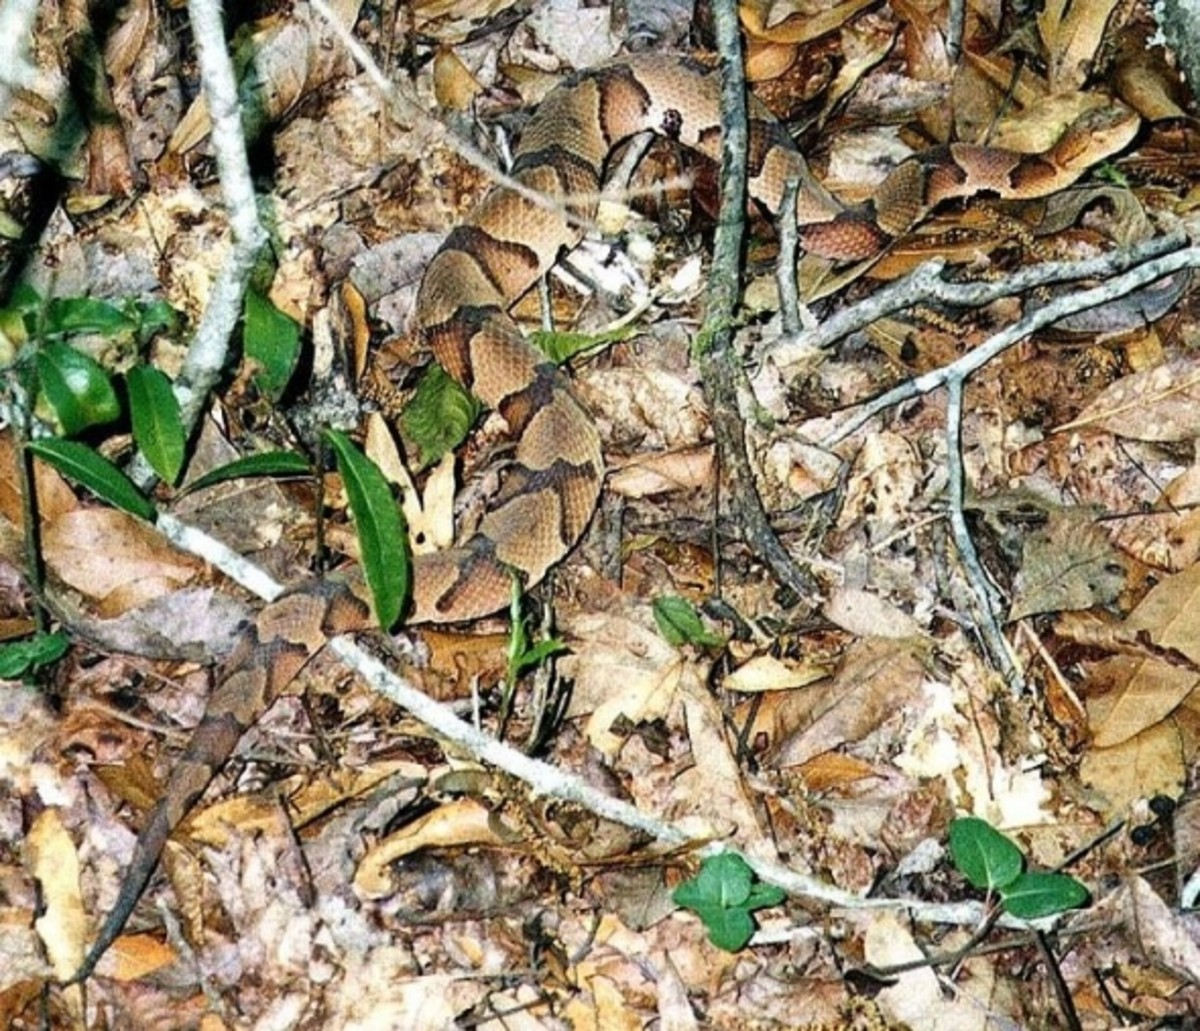 Copperhead Camouflaged in Leaves